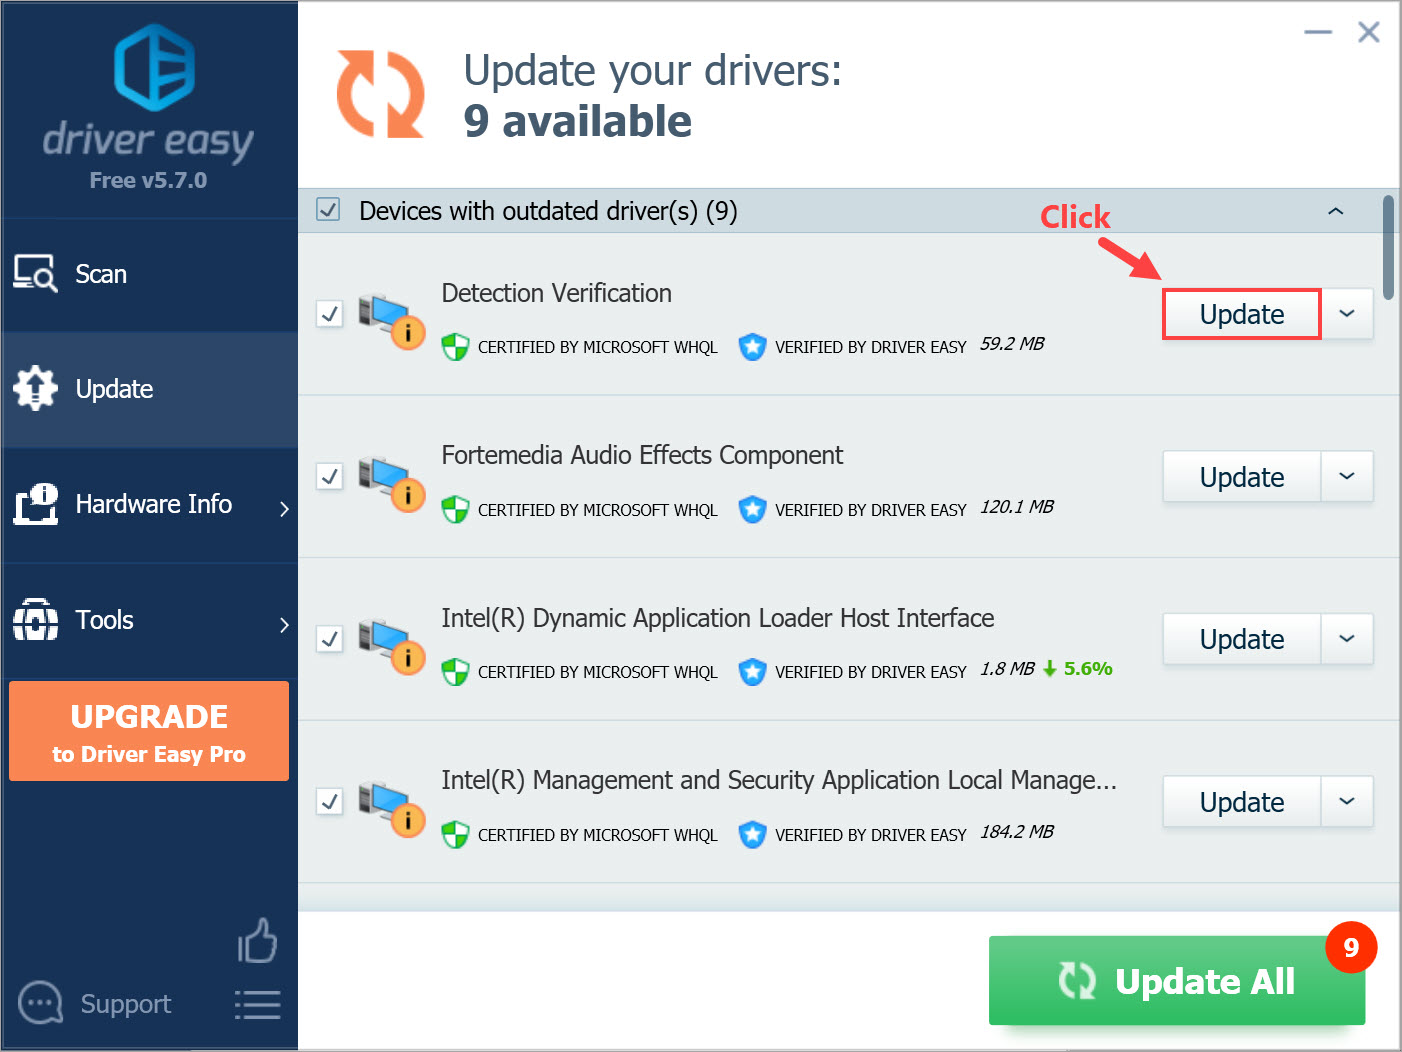 Driver Easy Free Update Drivers